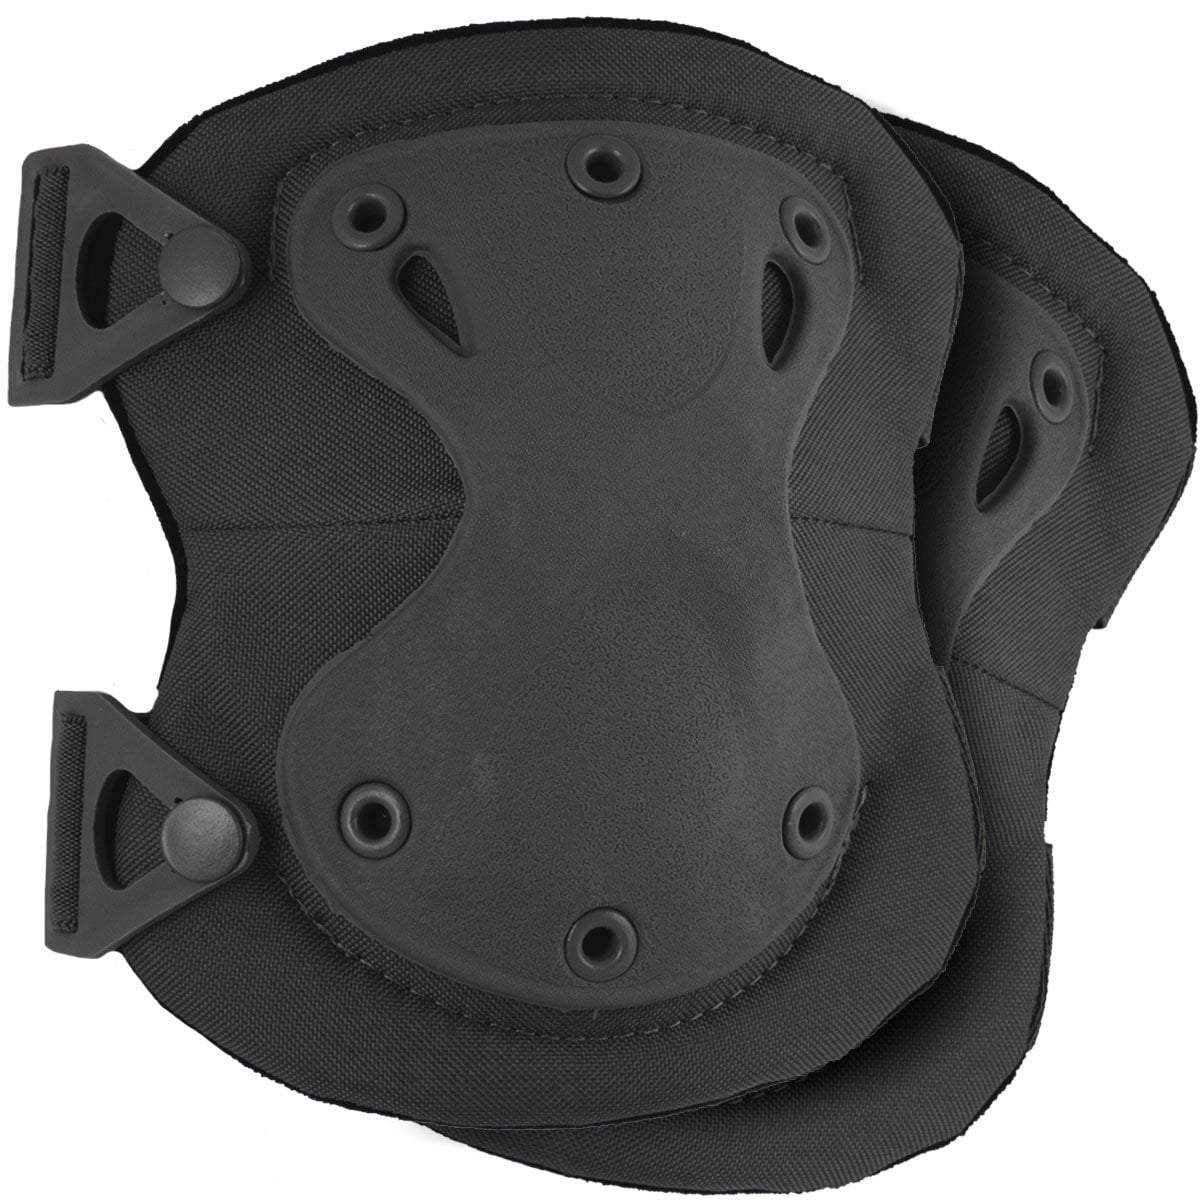 Bulldog X Tactical Knee Pads Black | UKMC Pro